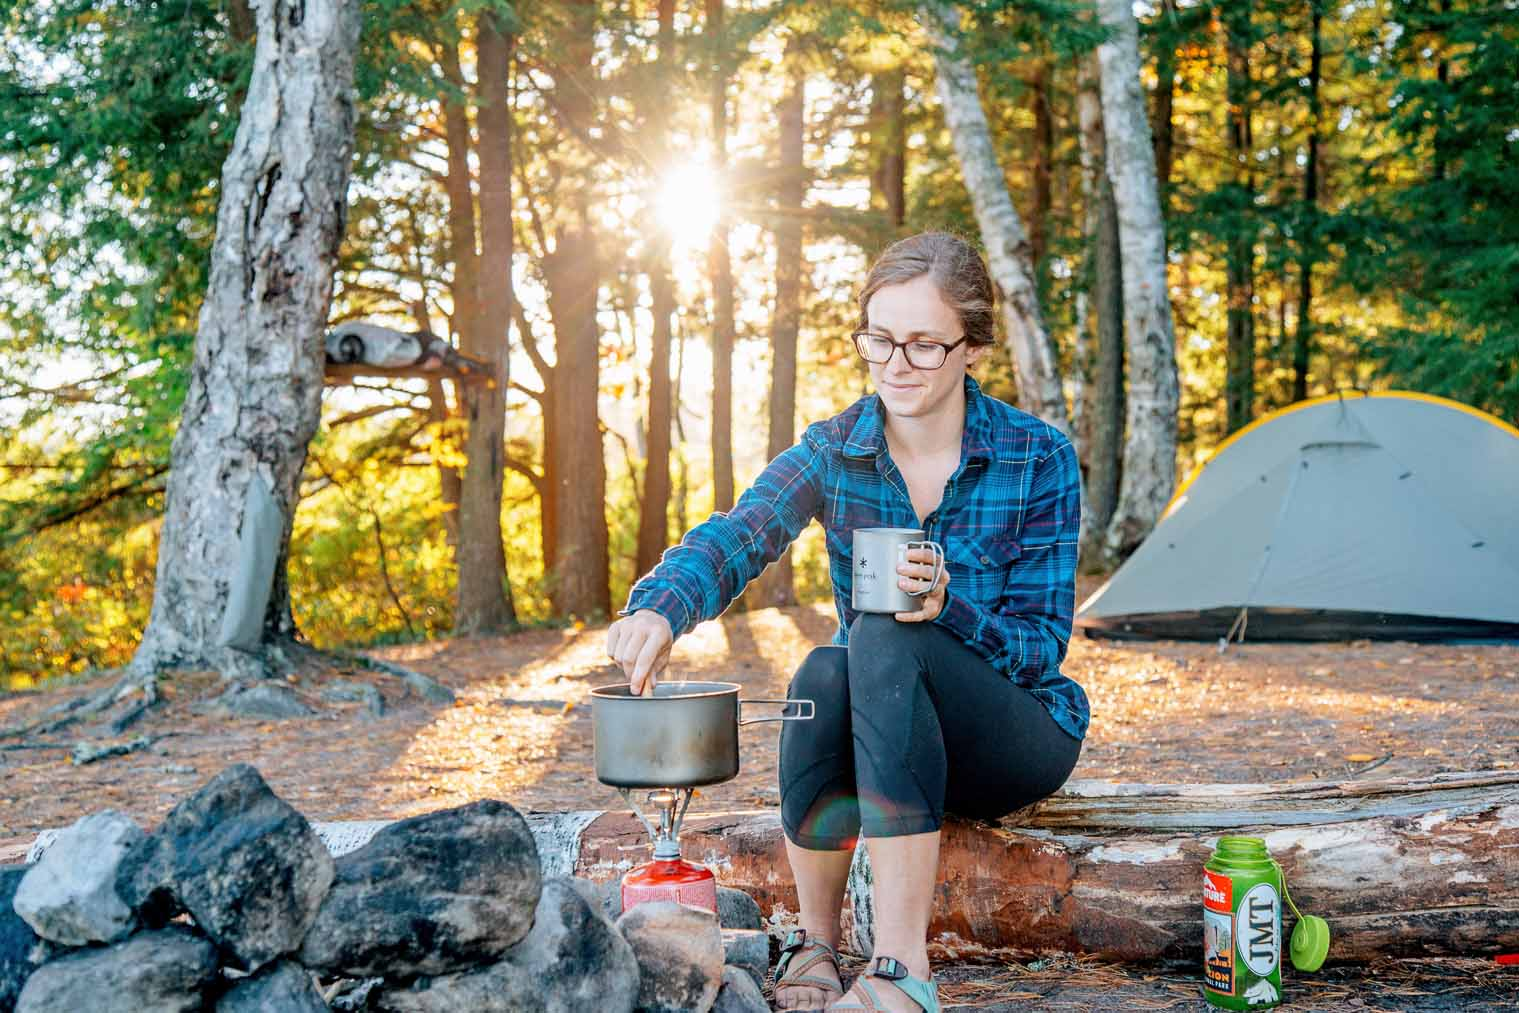 Hot, spicy and thoroughly filling, this one pot homemade backpacking meal is a great way to warm up at the end of a day.